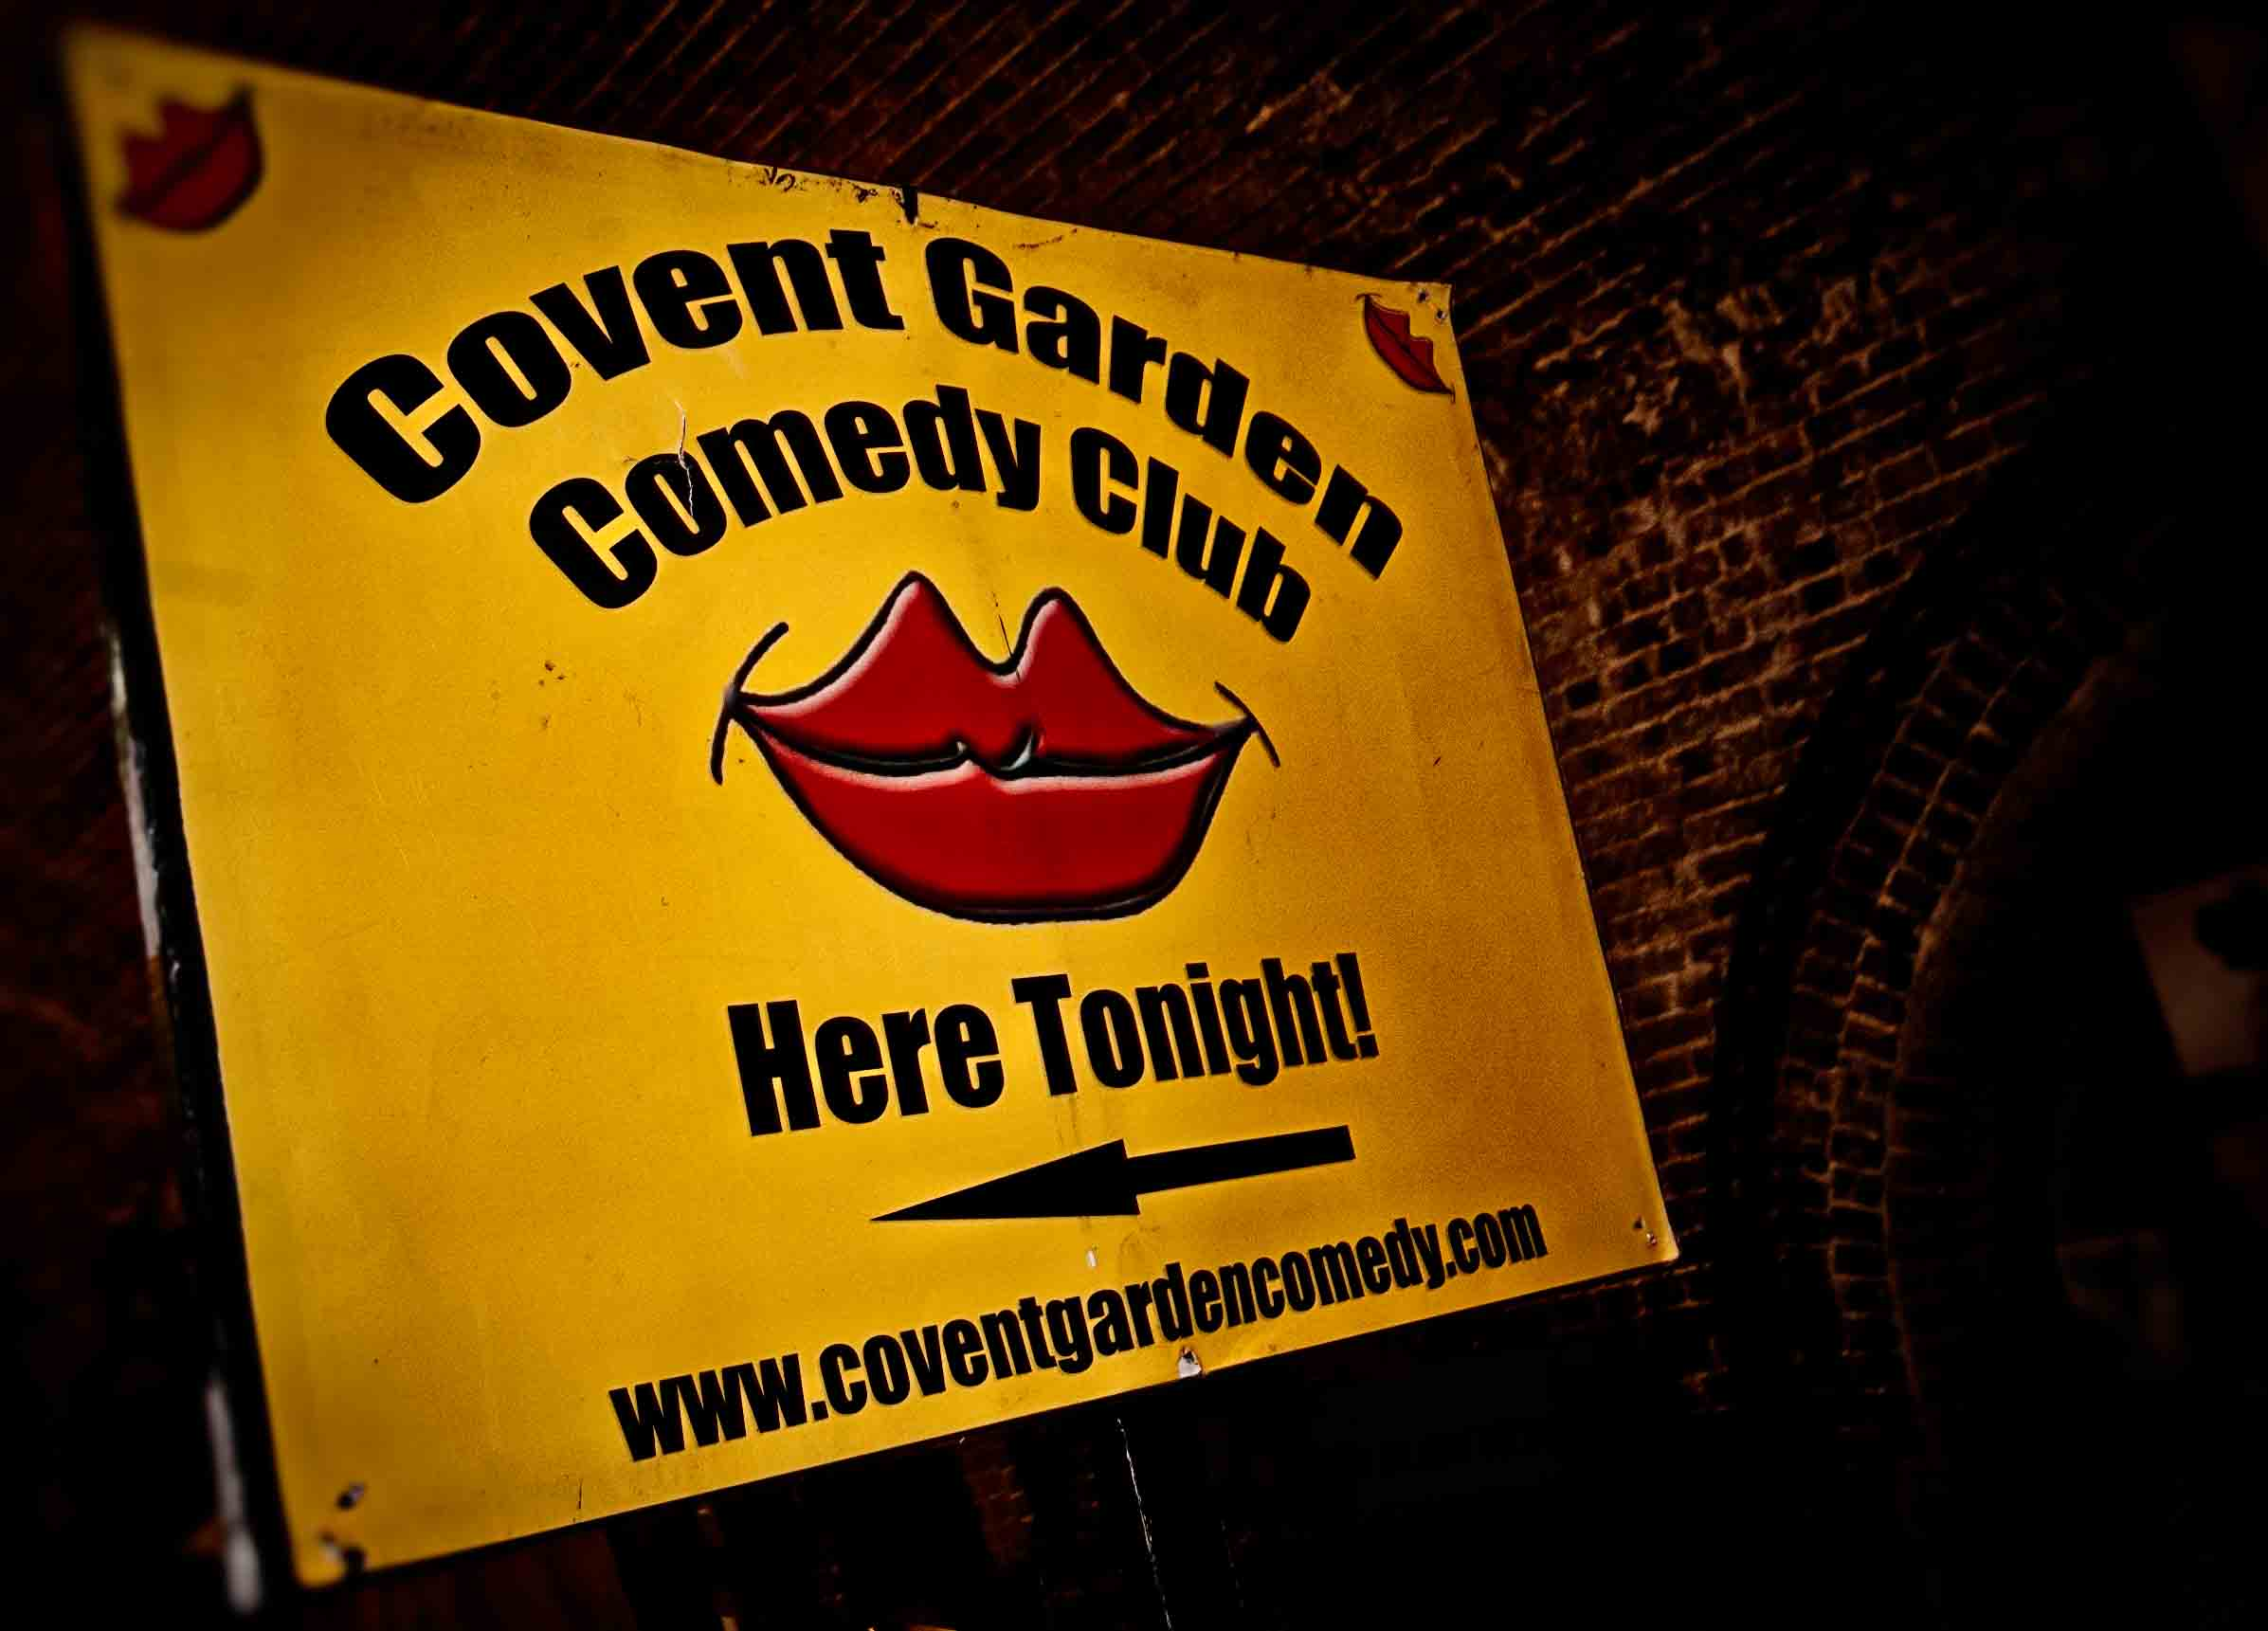 The Covent Garden Comedy Club